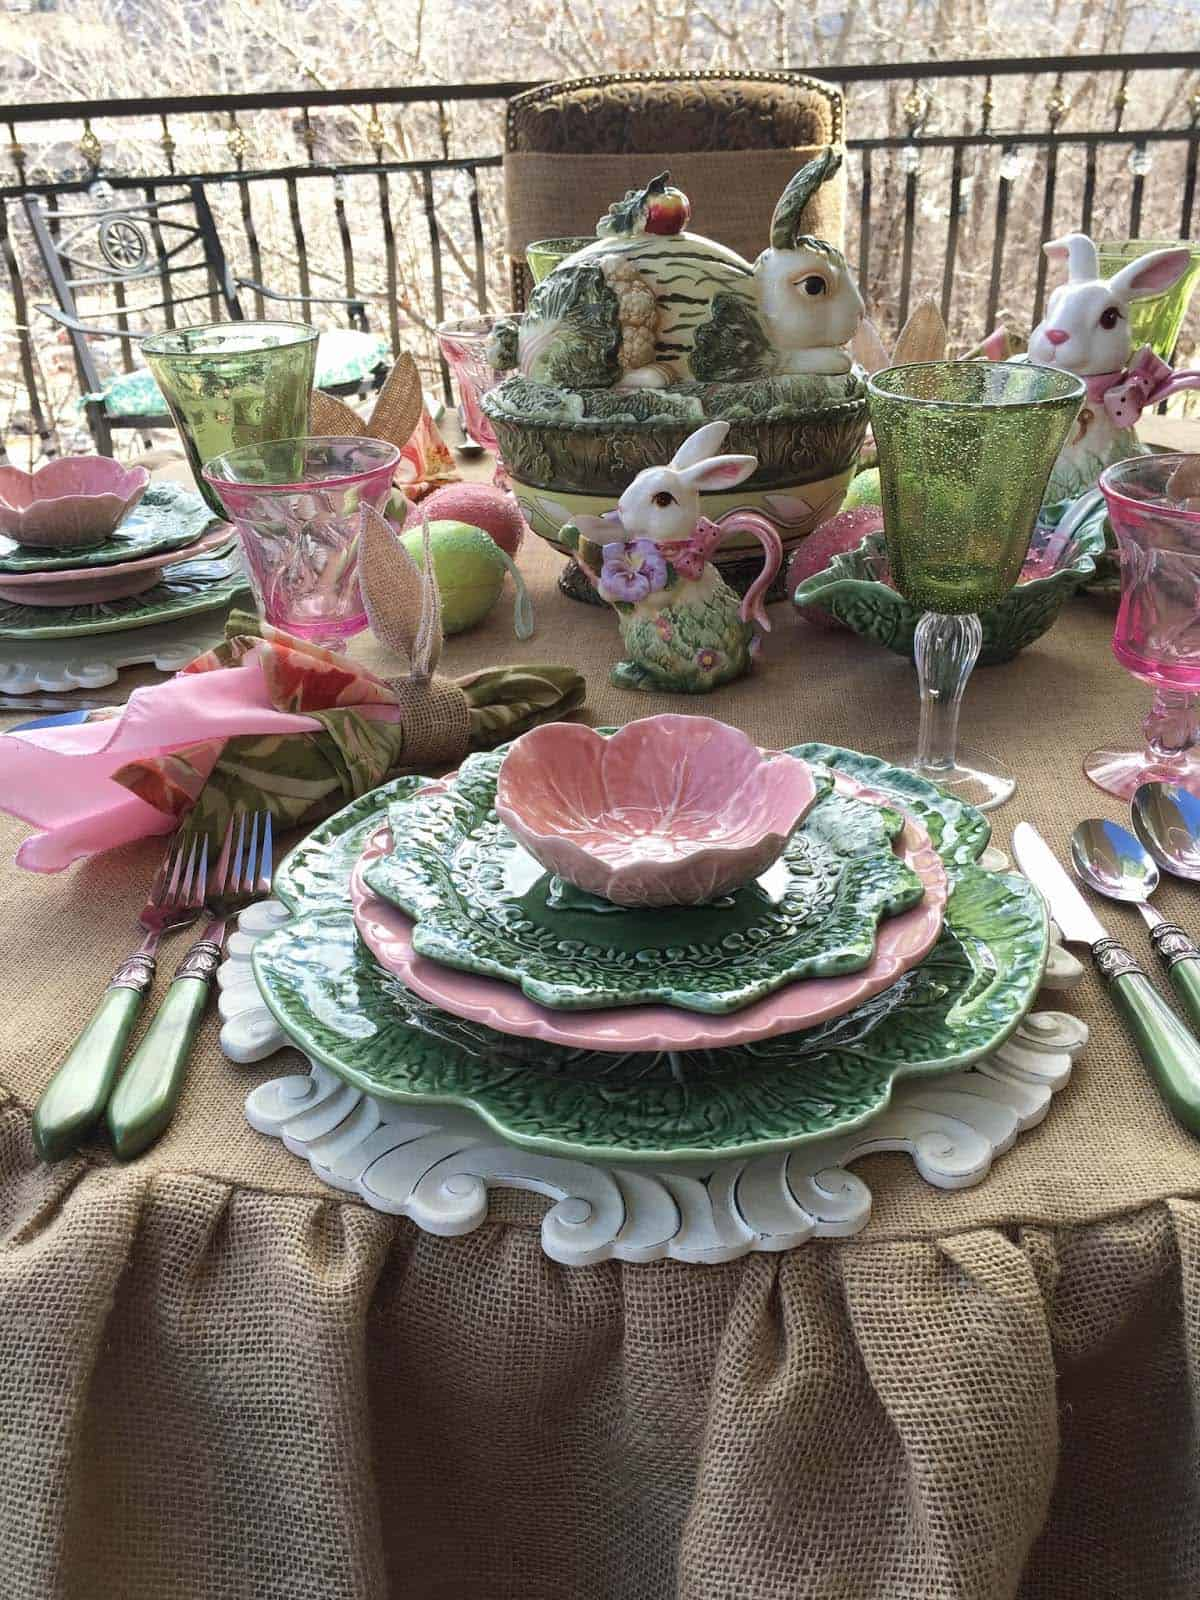 Inspiring Easter Table Centerpiece Ideas-20-1 Kindesign